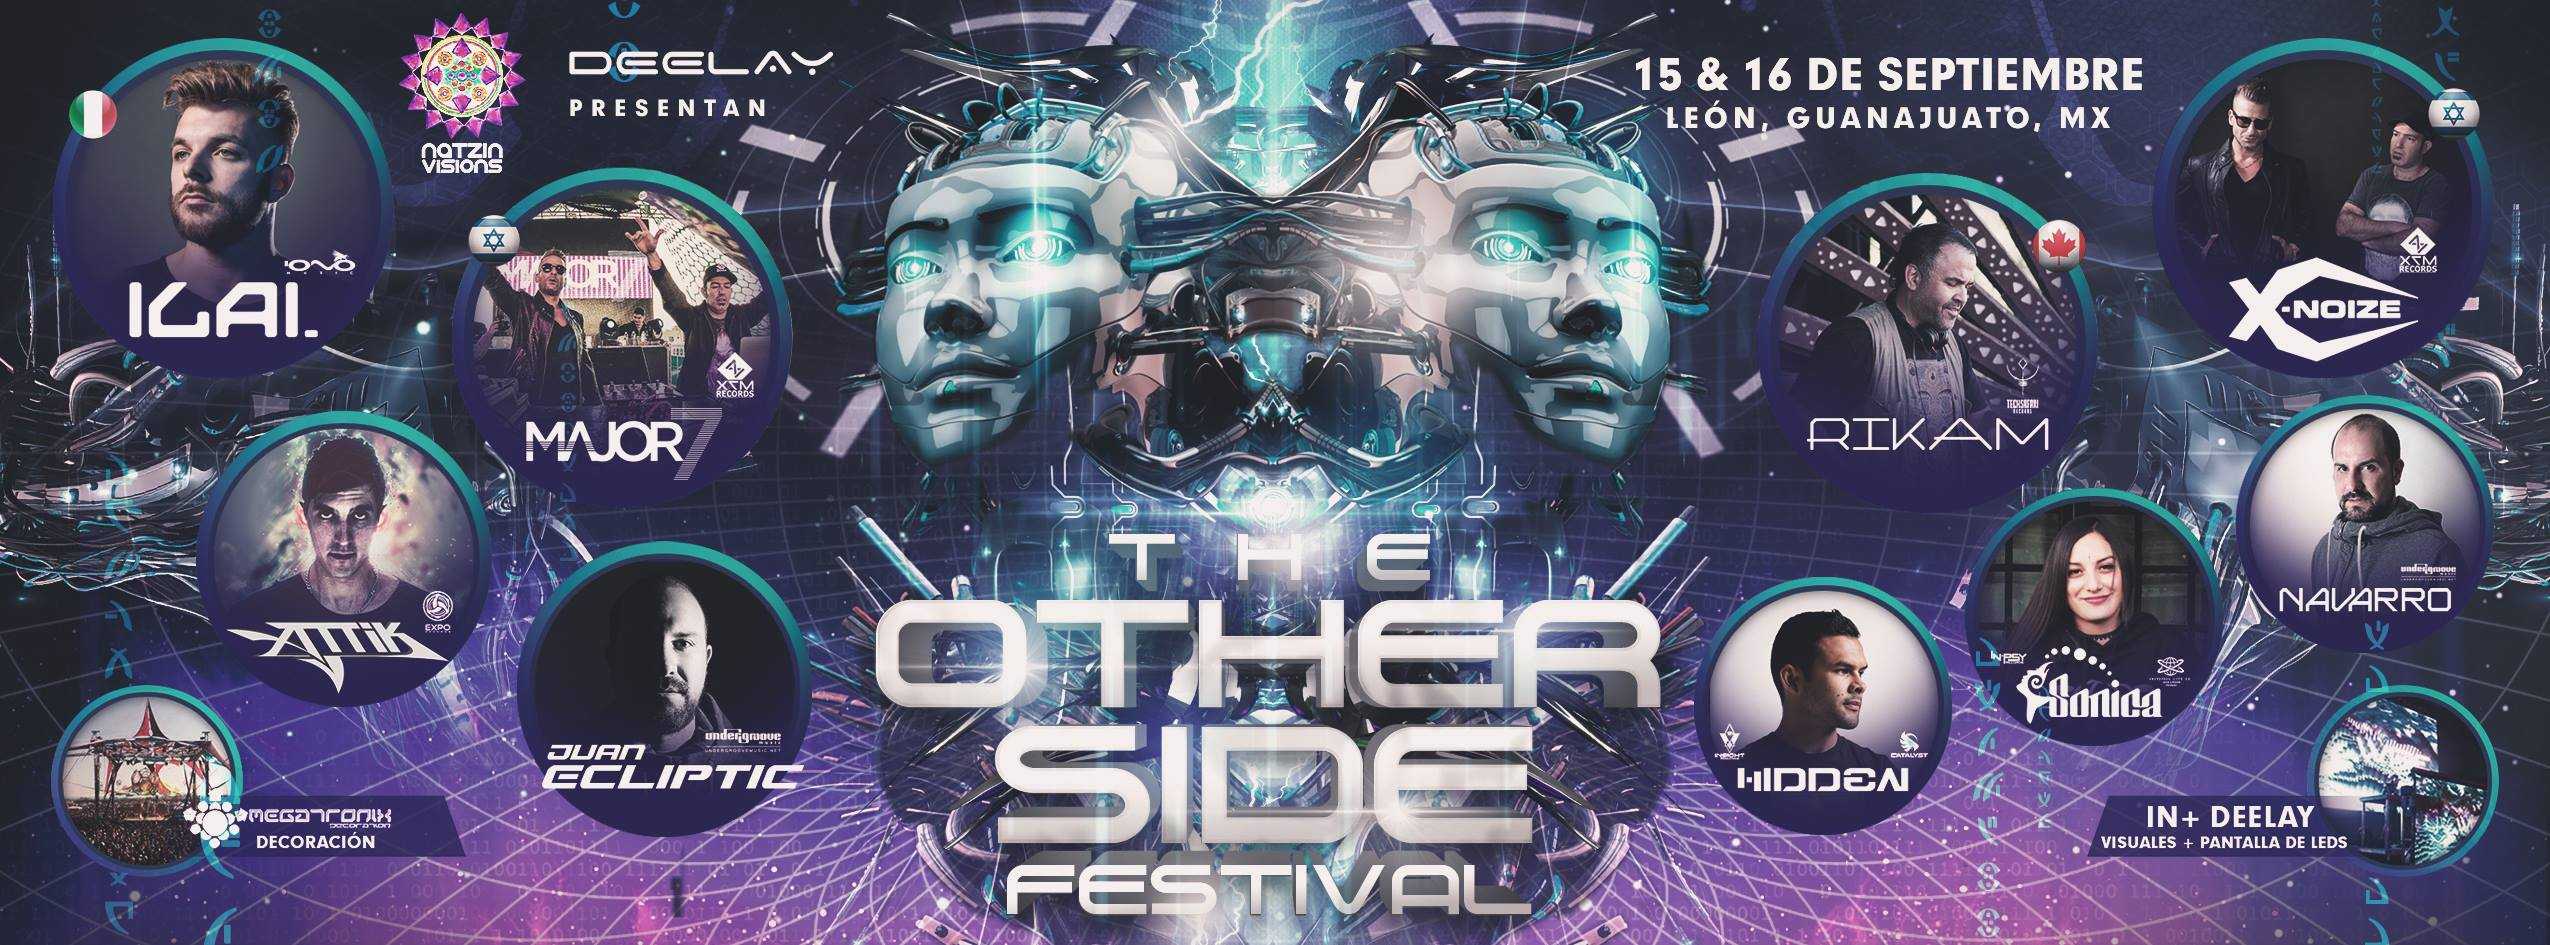 Boletos The Other Side Festival 15 Sept 2018 León Gto